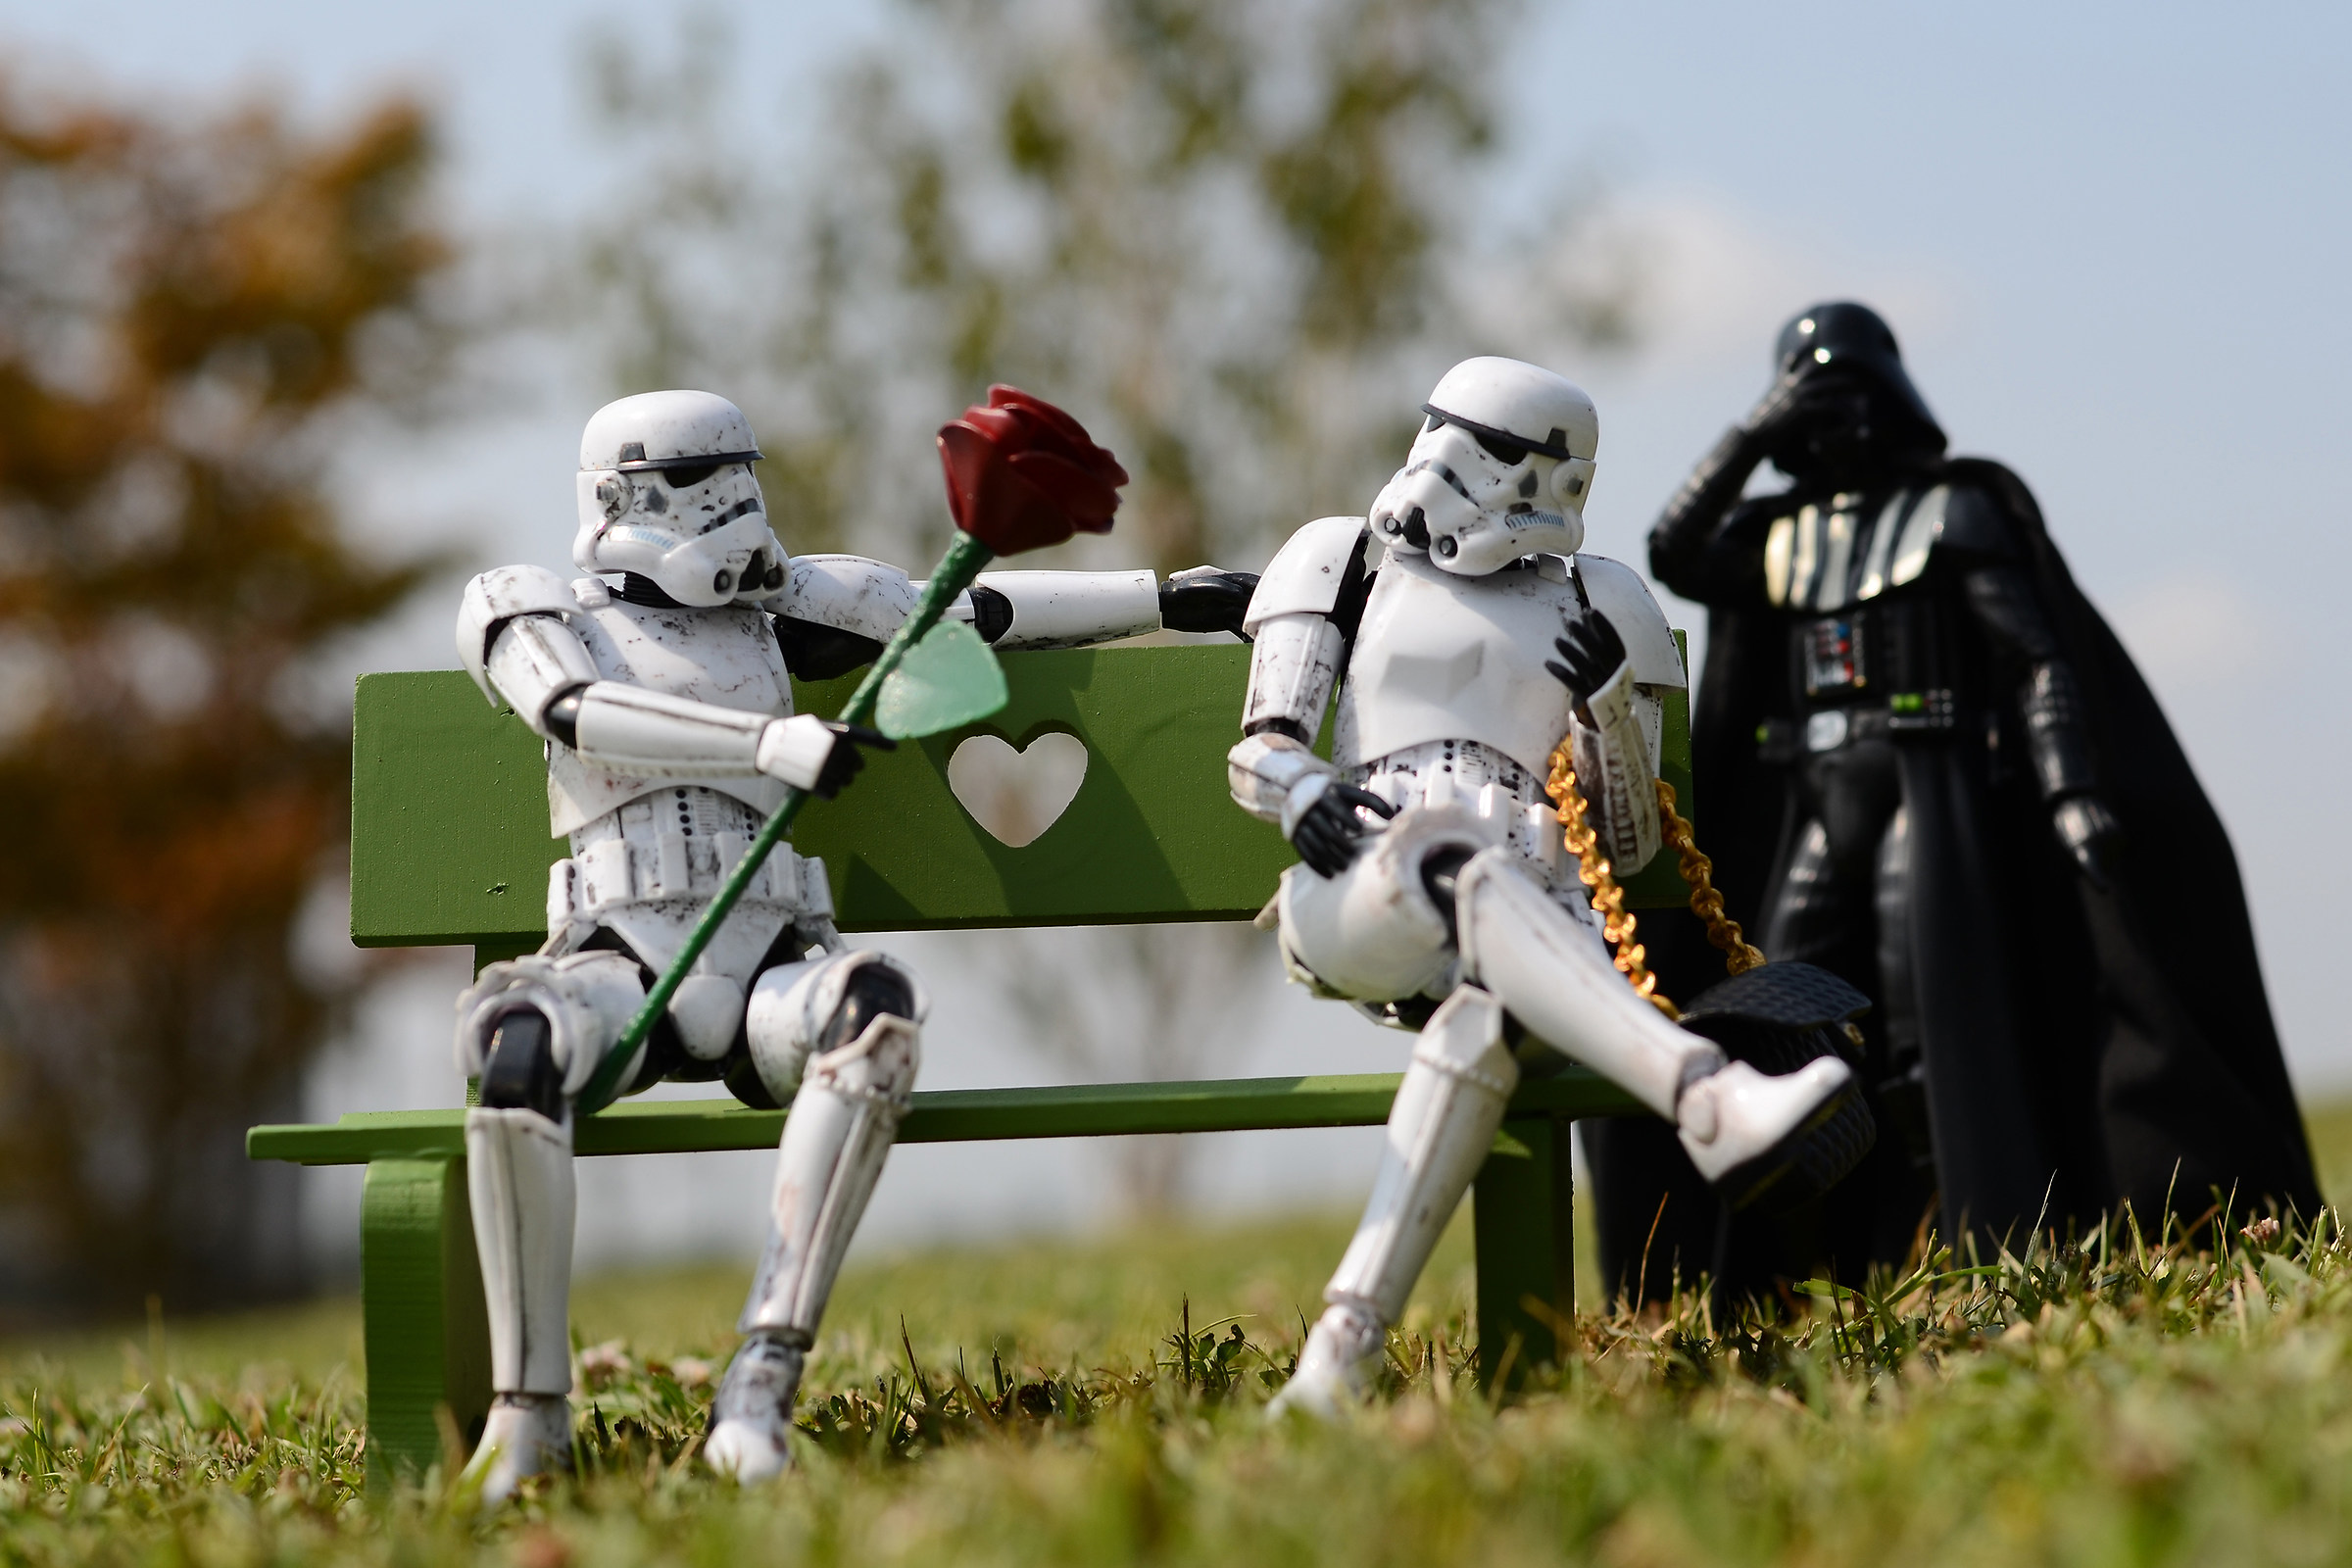 Stormtrooper story....